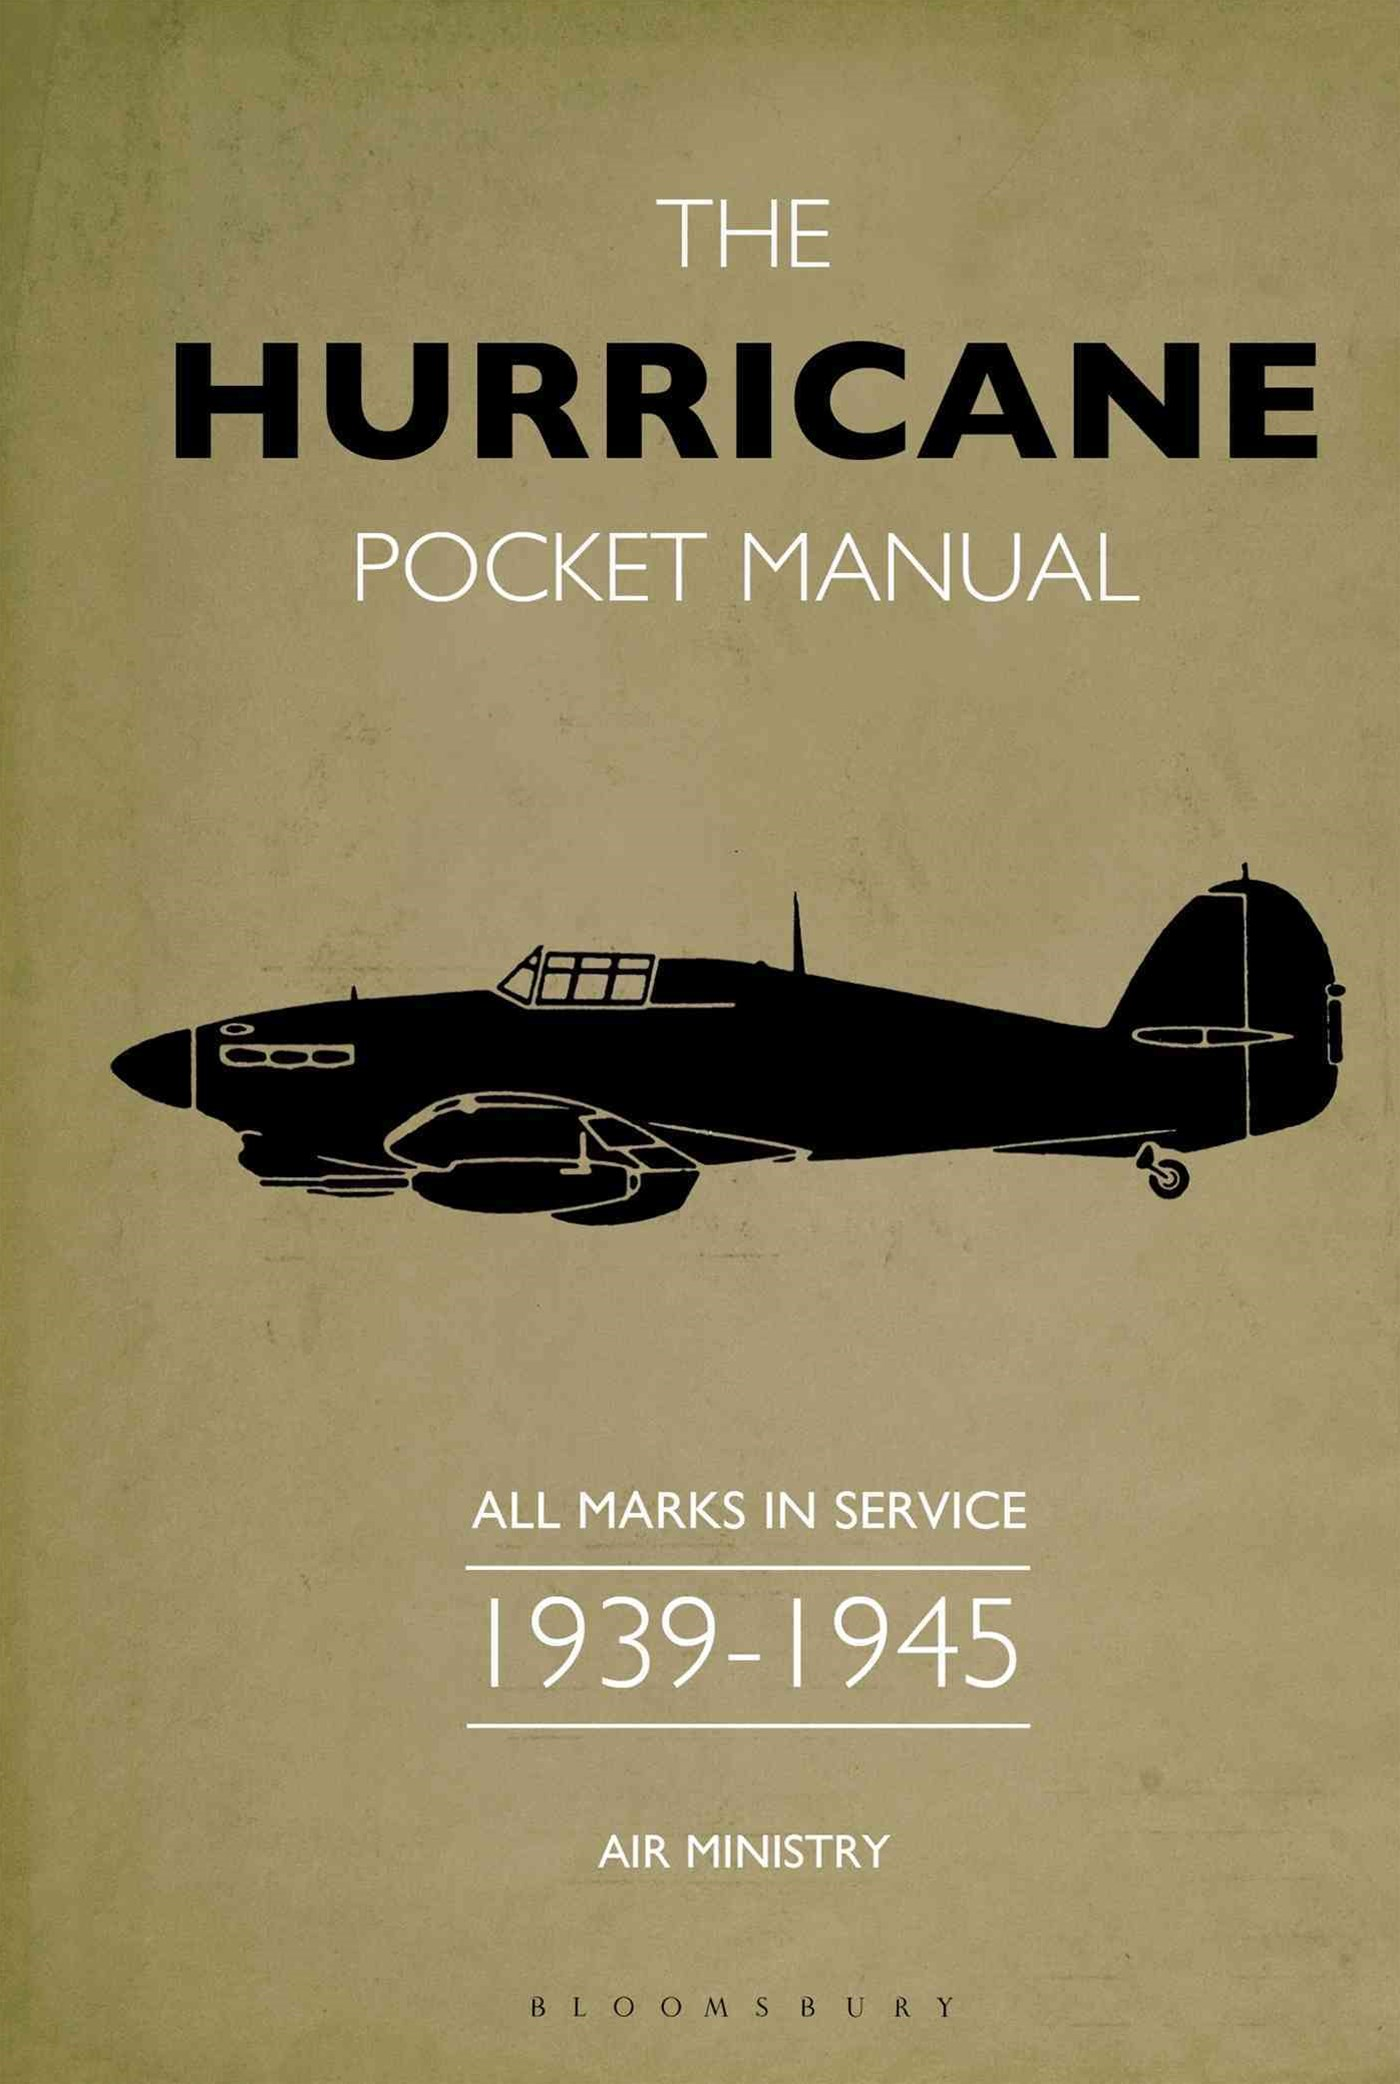 Hurricane Pocket Manual